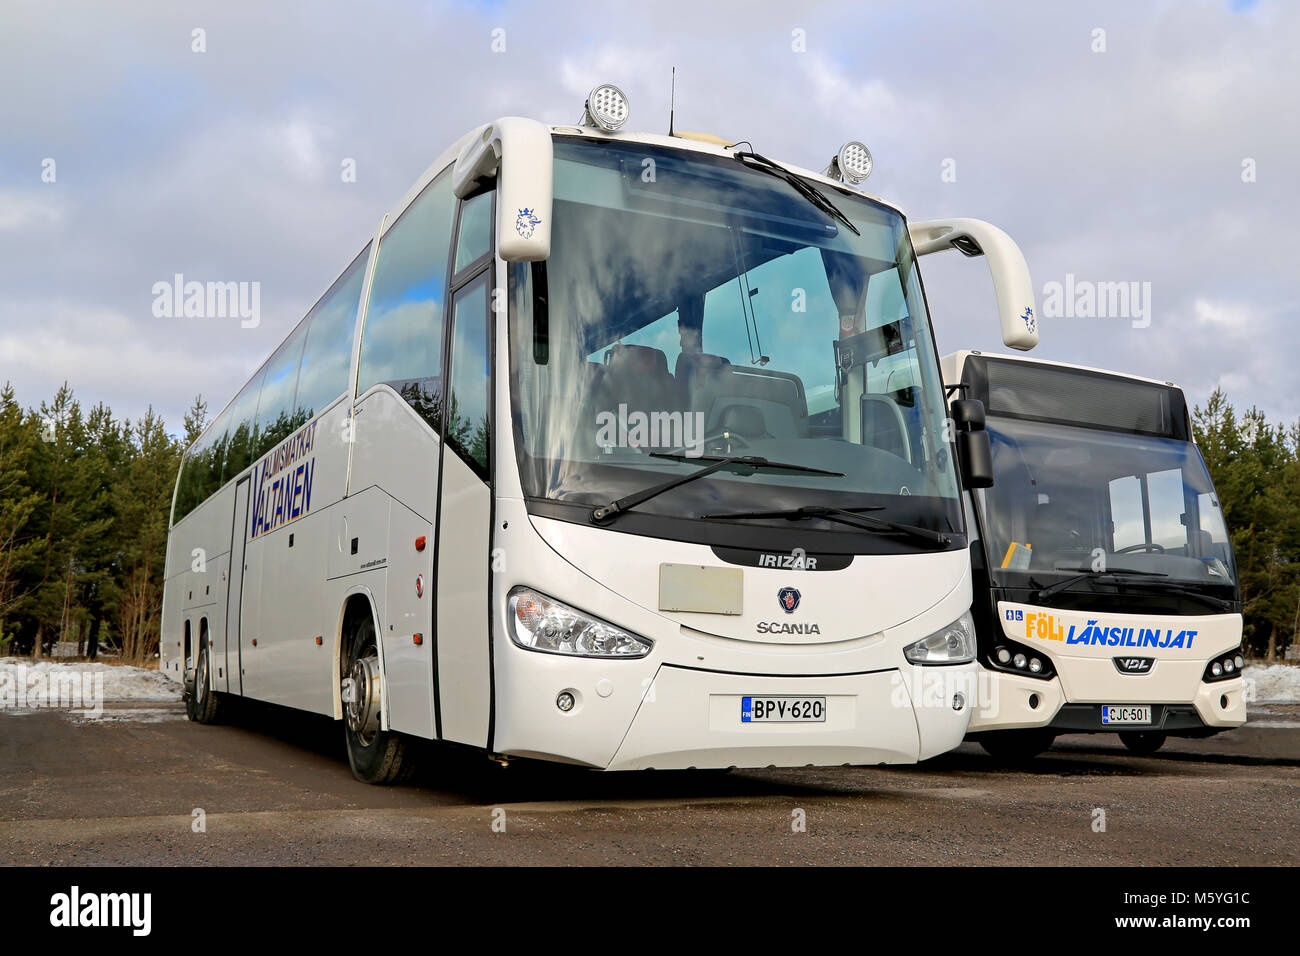 Low Floor City Bus Stock Photos Scania Irizar Wiring Diagram Aura Finland March 1 2015 White Coach And Vdl